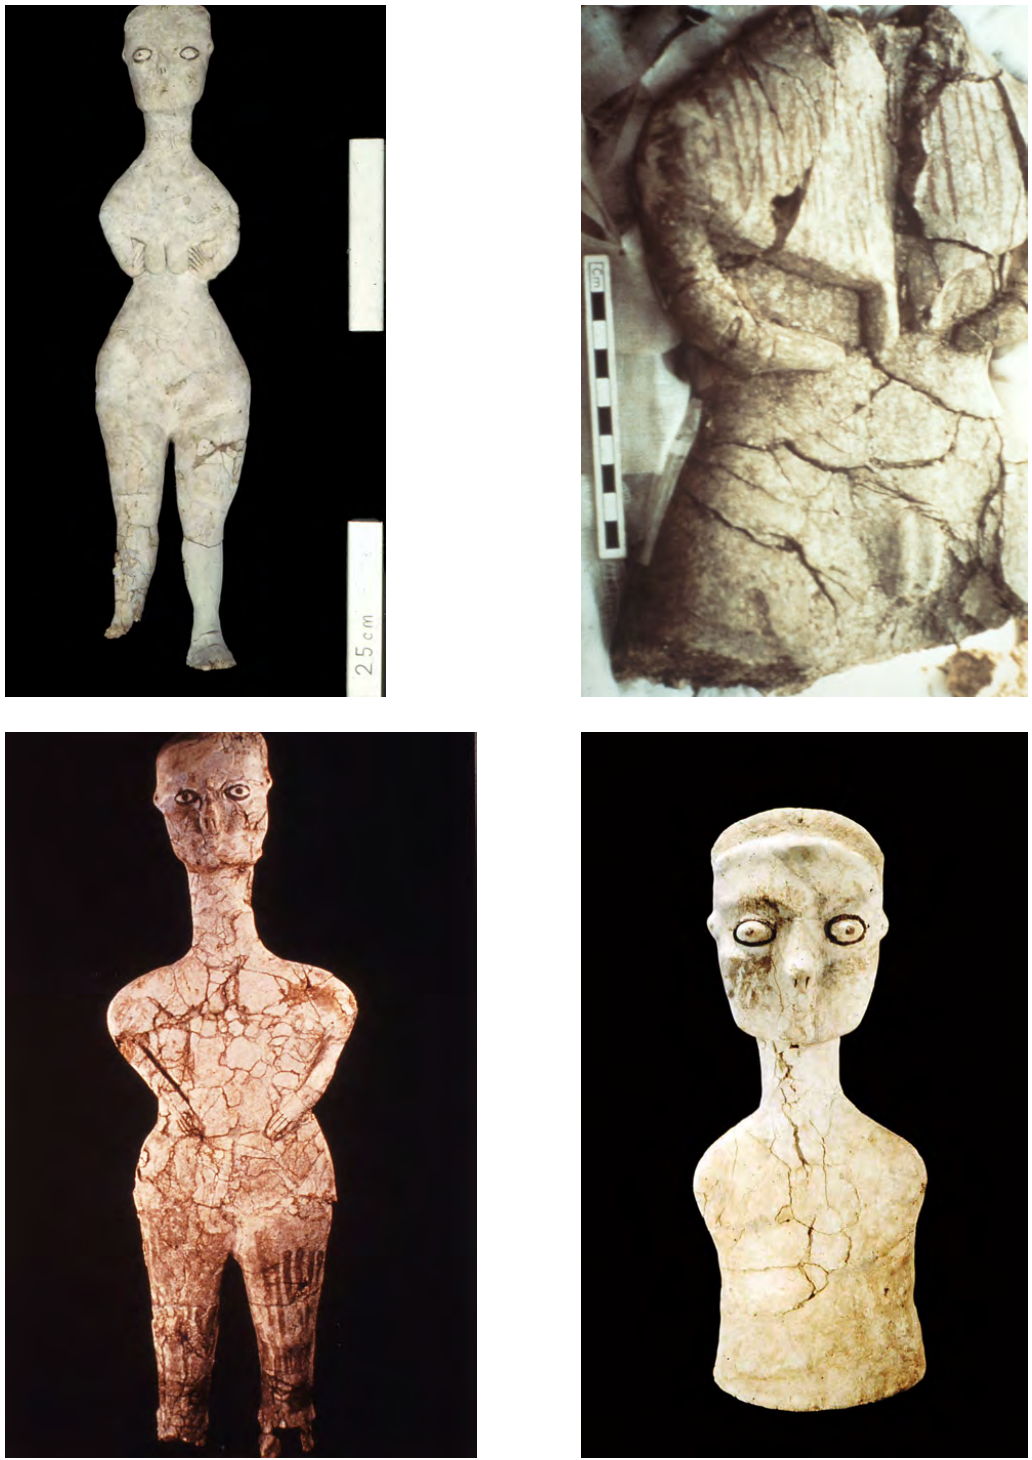 Photographs of four statues of figures.